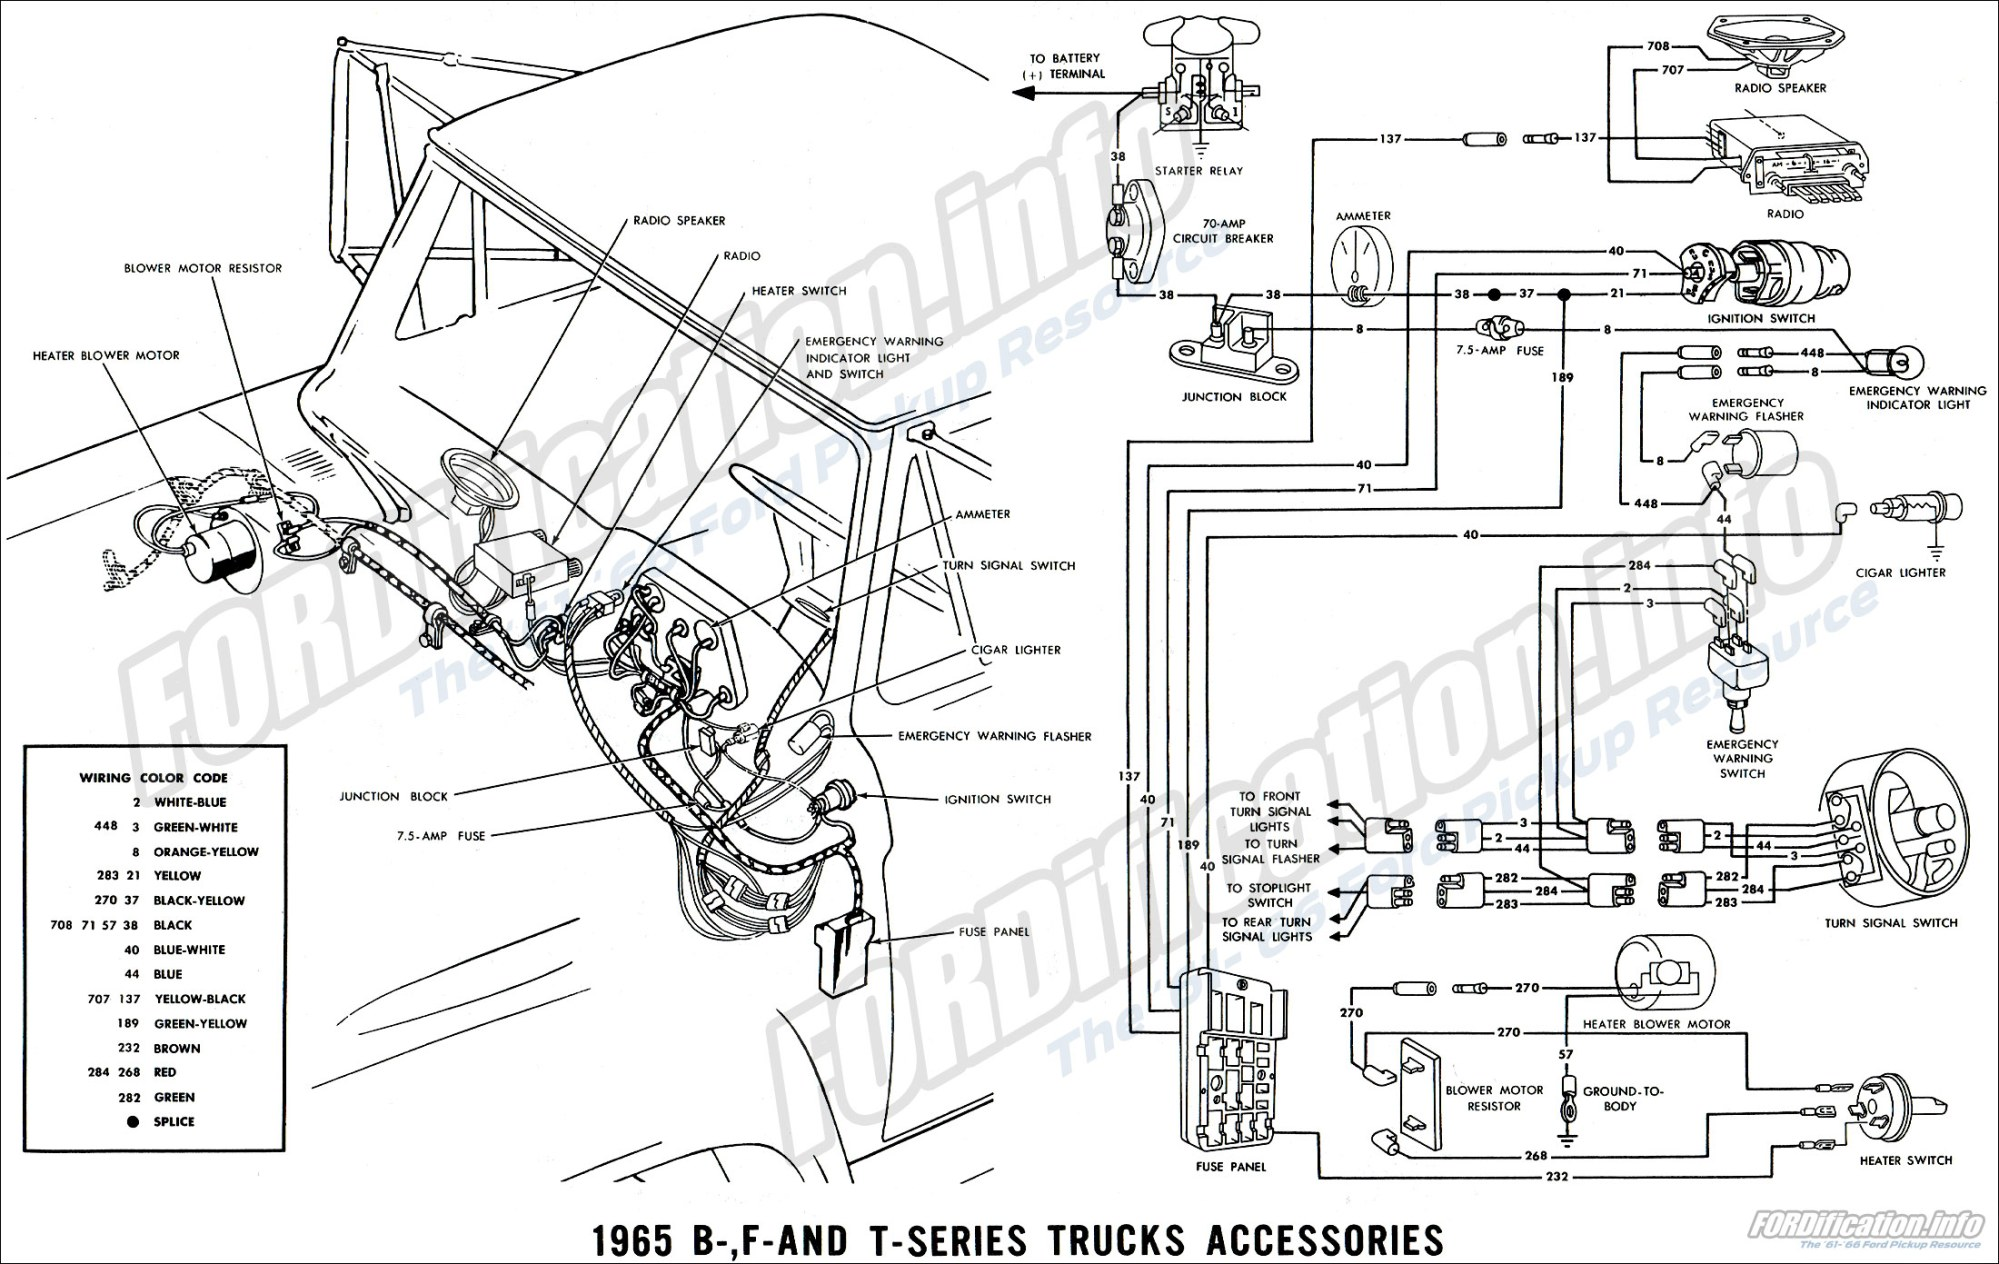 hight resolution of 1965 ford truck wiring diagrams fordification info the 61 66 1965 b f